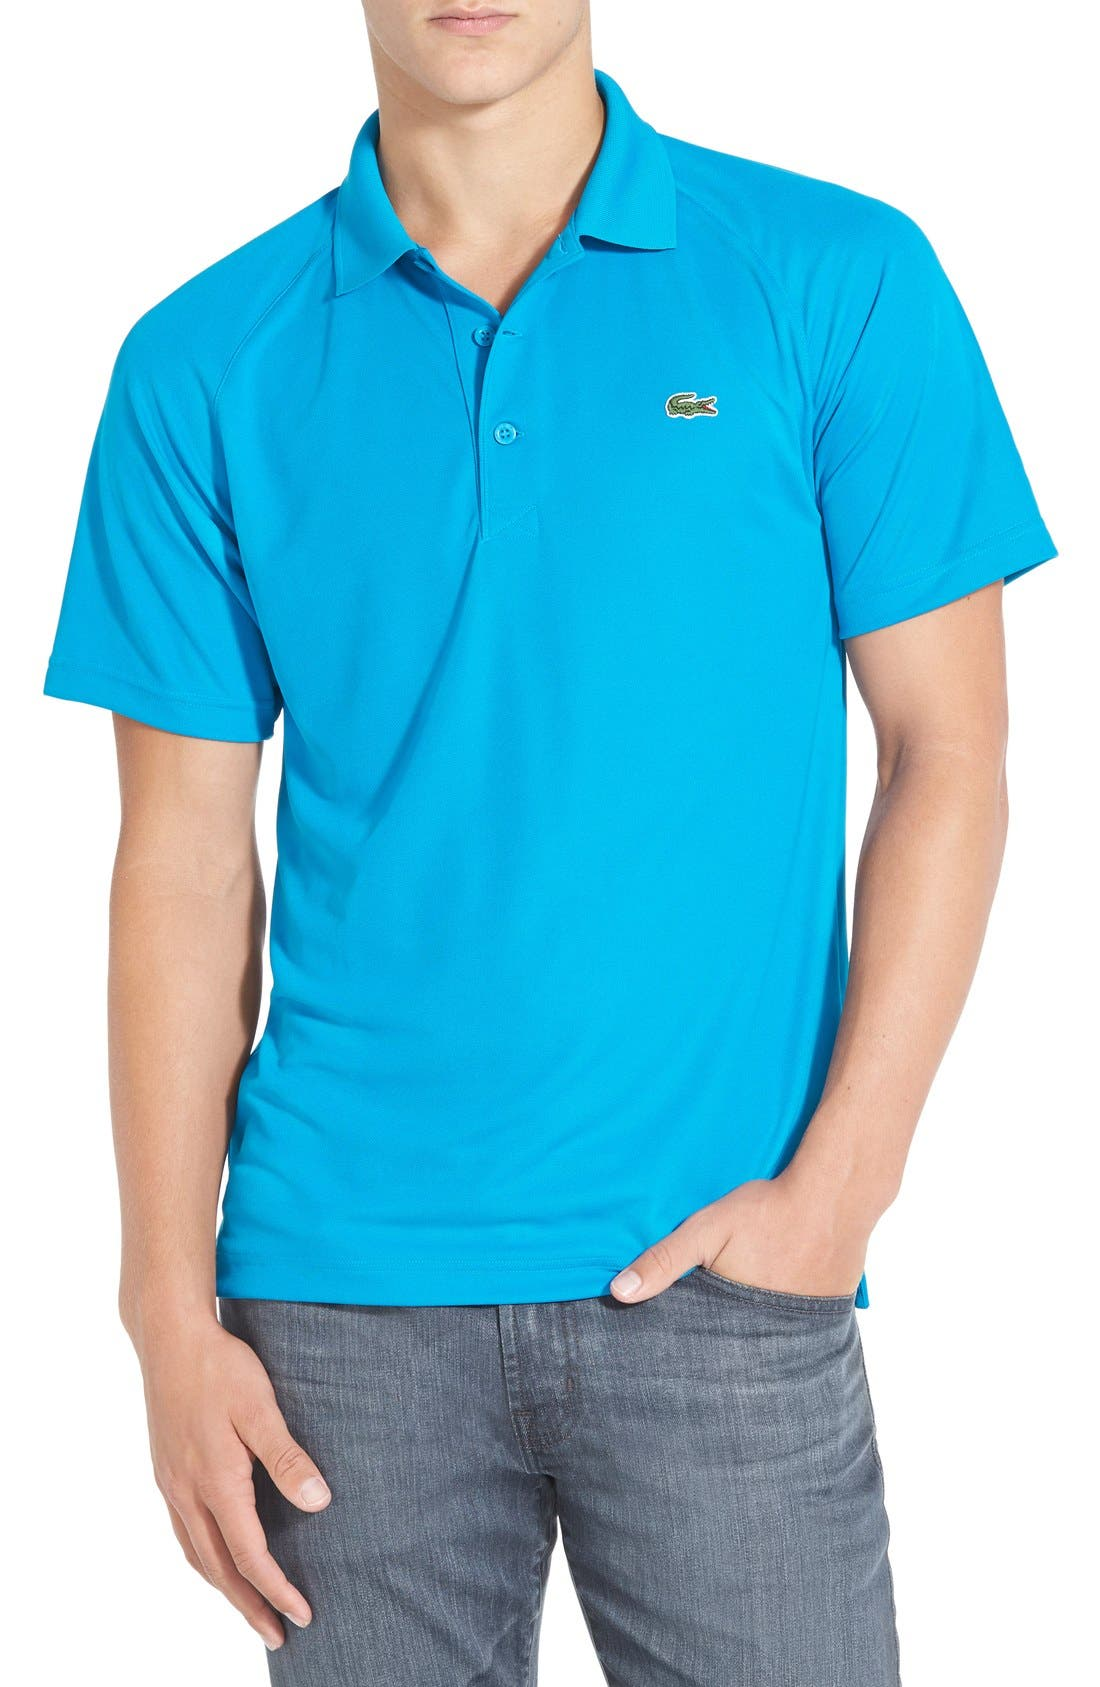 'Sport' Raglan Ultra Dry Performance Polo,                             Main thumbnail 1, color,                             Santorino Blue